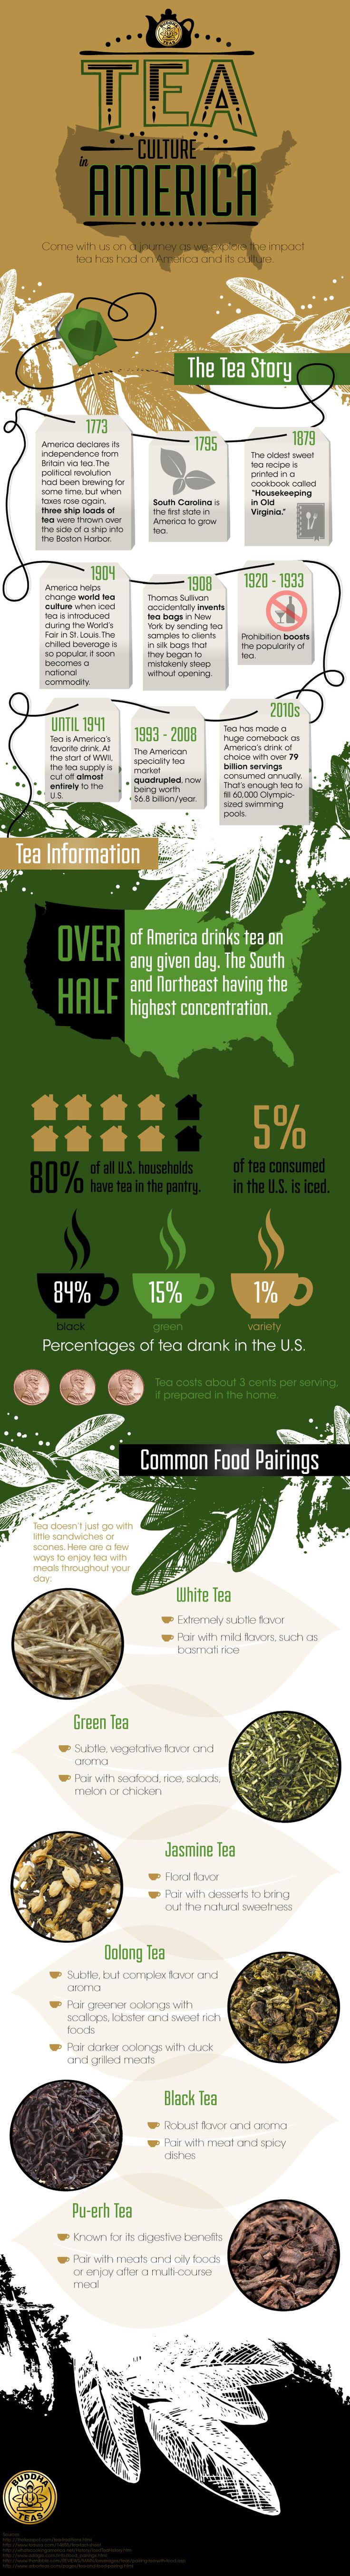 I'm a tea drinker. I drink a lot of coffee too, but you can find decent coffee just about anywhere. Tea, on the other hand, is a little harder to find. Love this infographic about tea culture in America. Plus, I heard green tea can help you kick caffeine...